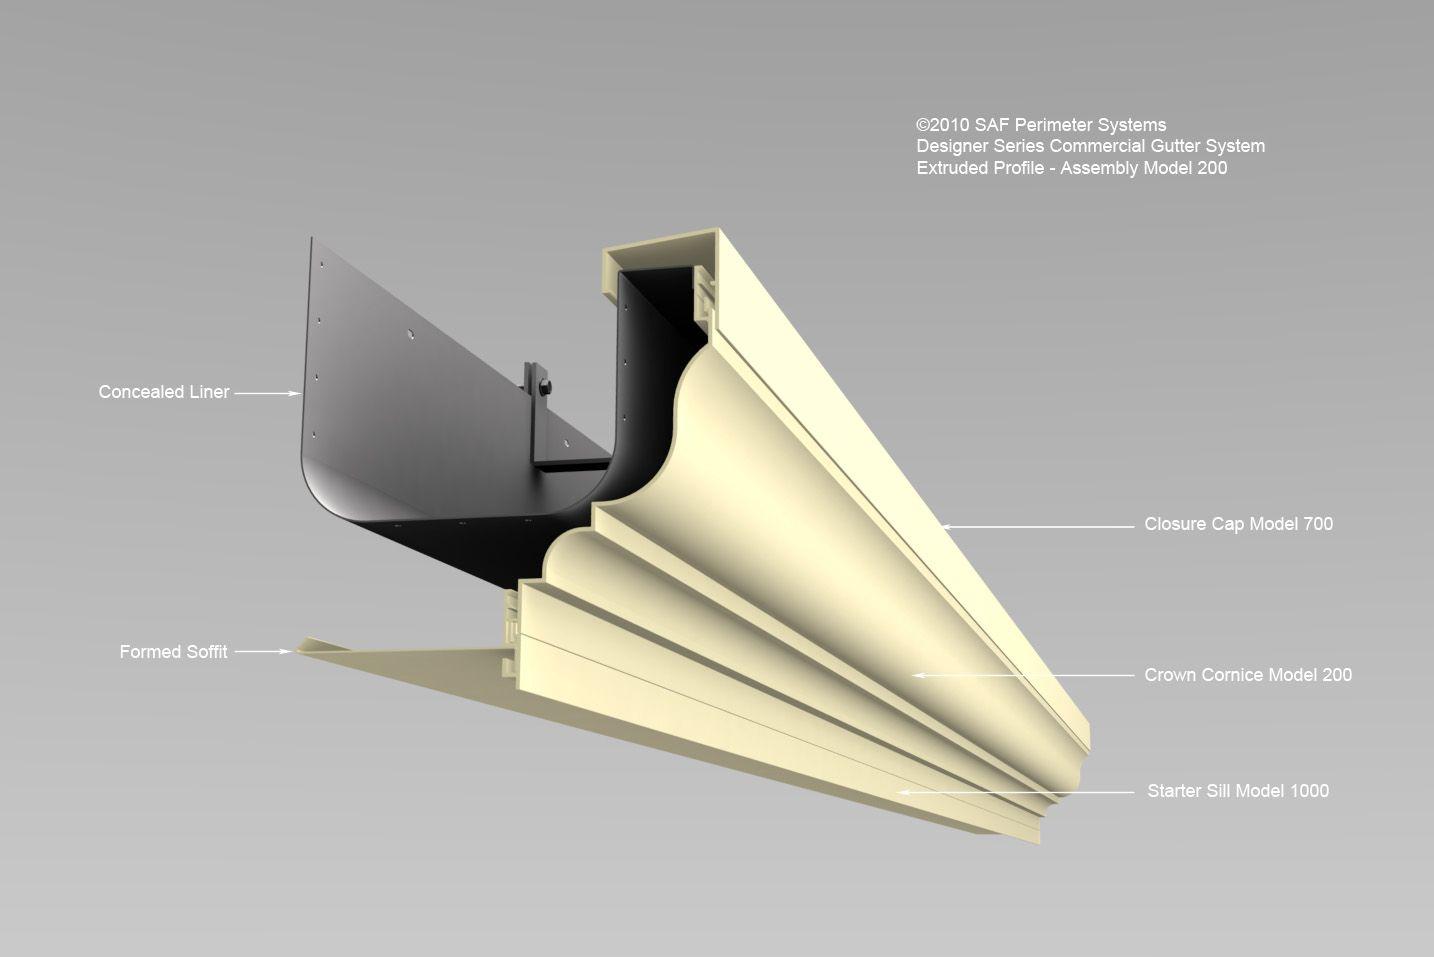 Feature Views Series 200 Extruded Gutters Saf Southern Aluminum Finishing Co Inc Saf Southern Aluminum Finish Diy Home Repair House Trim Gutter Sizes